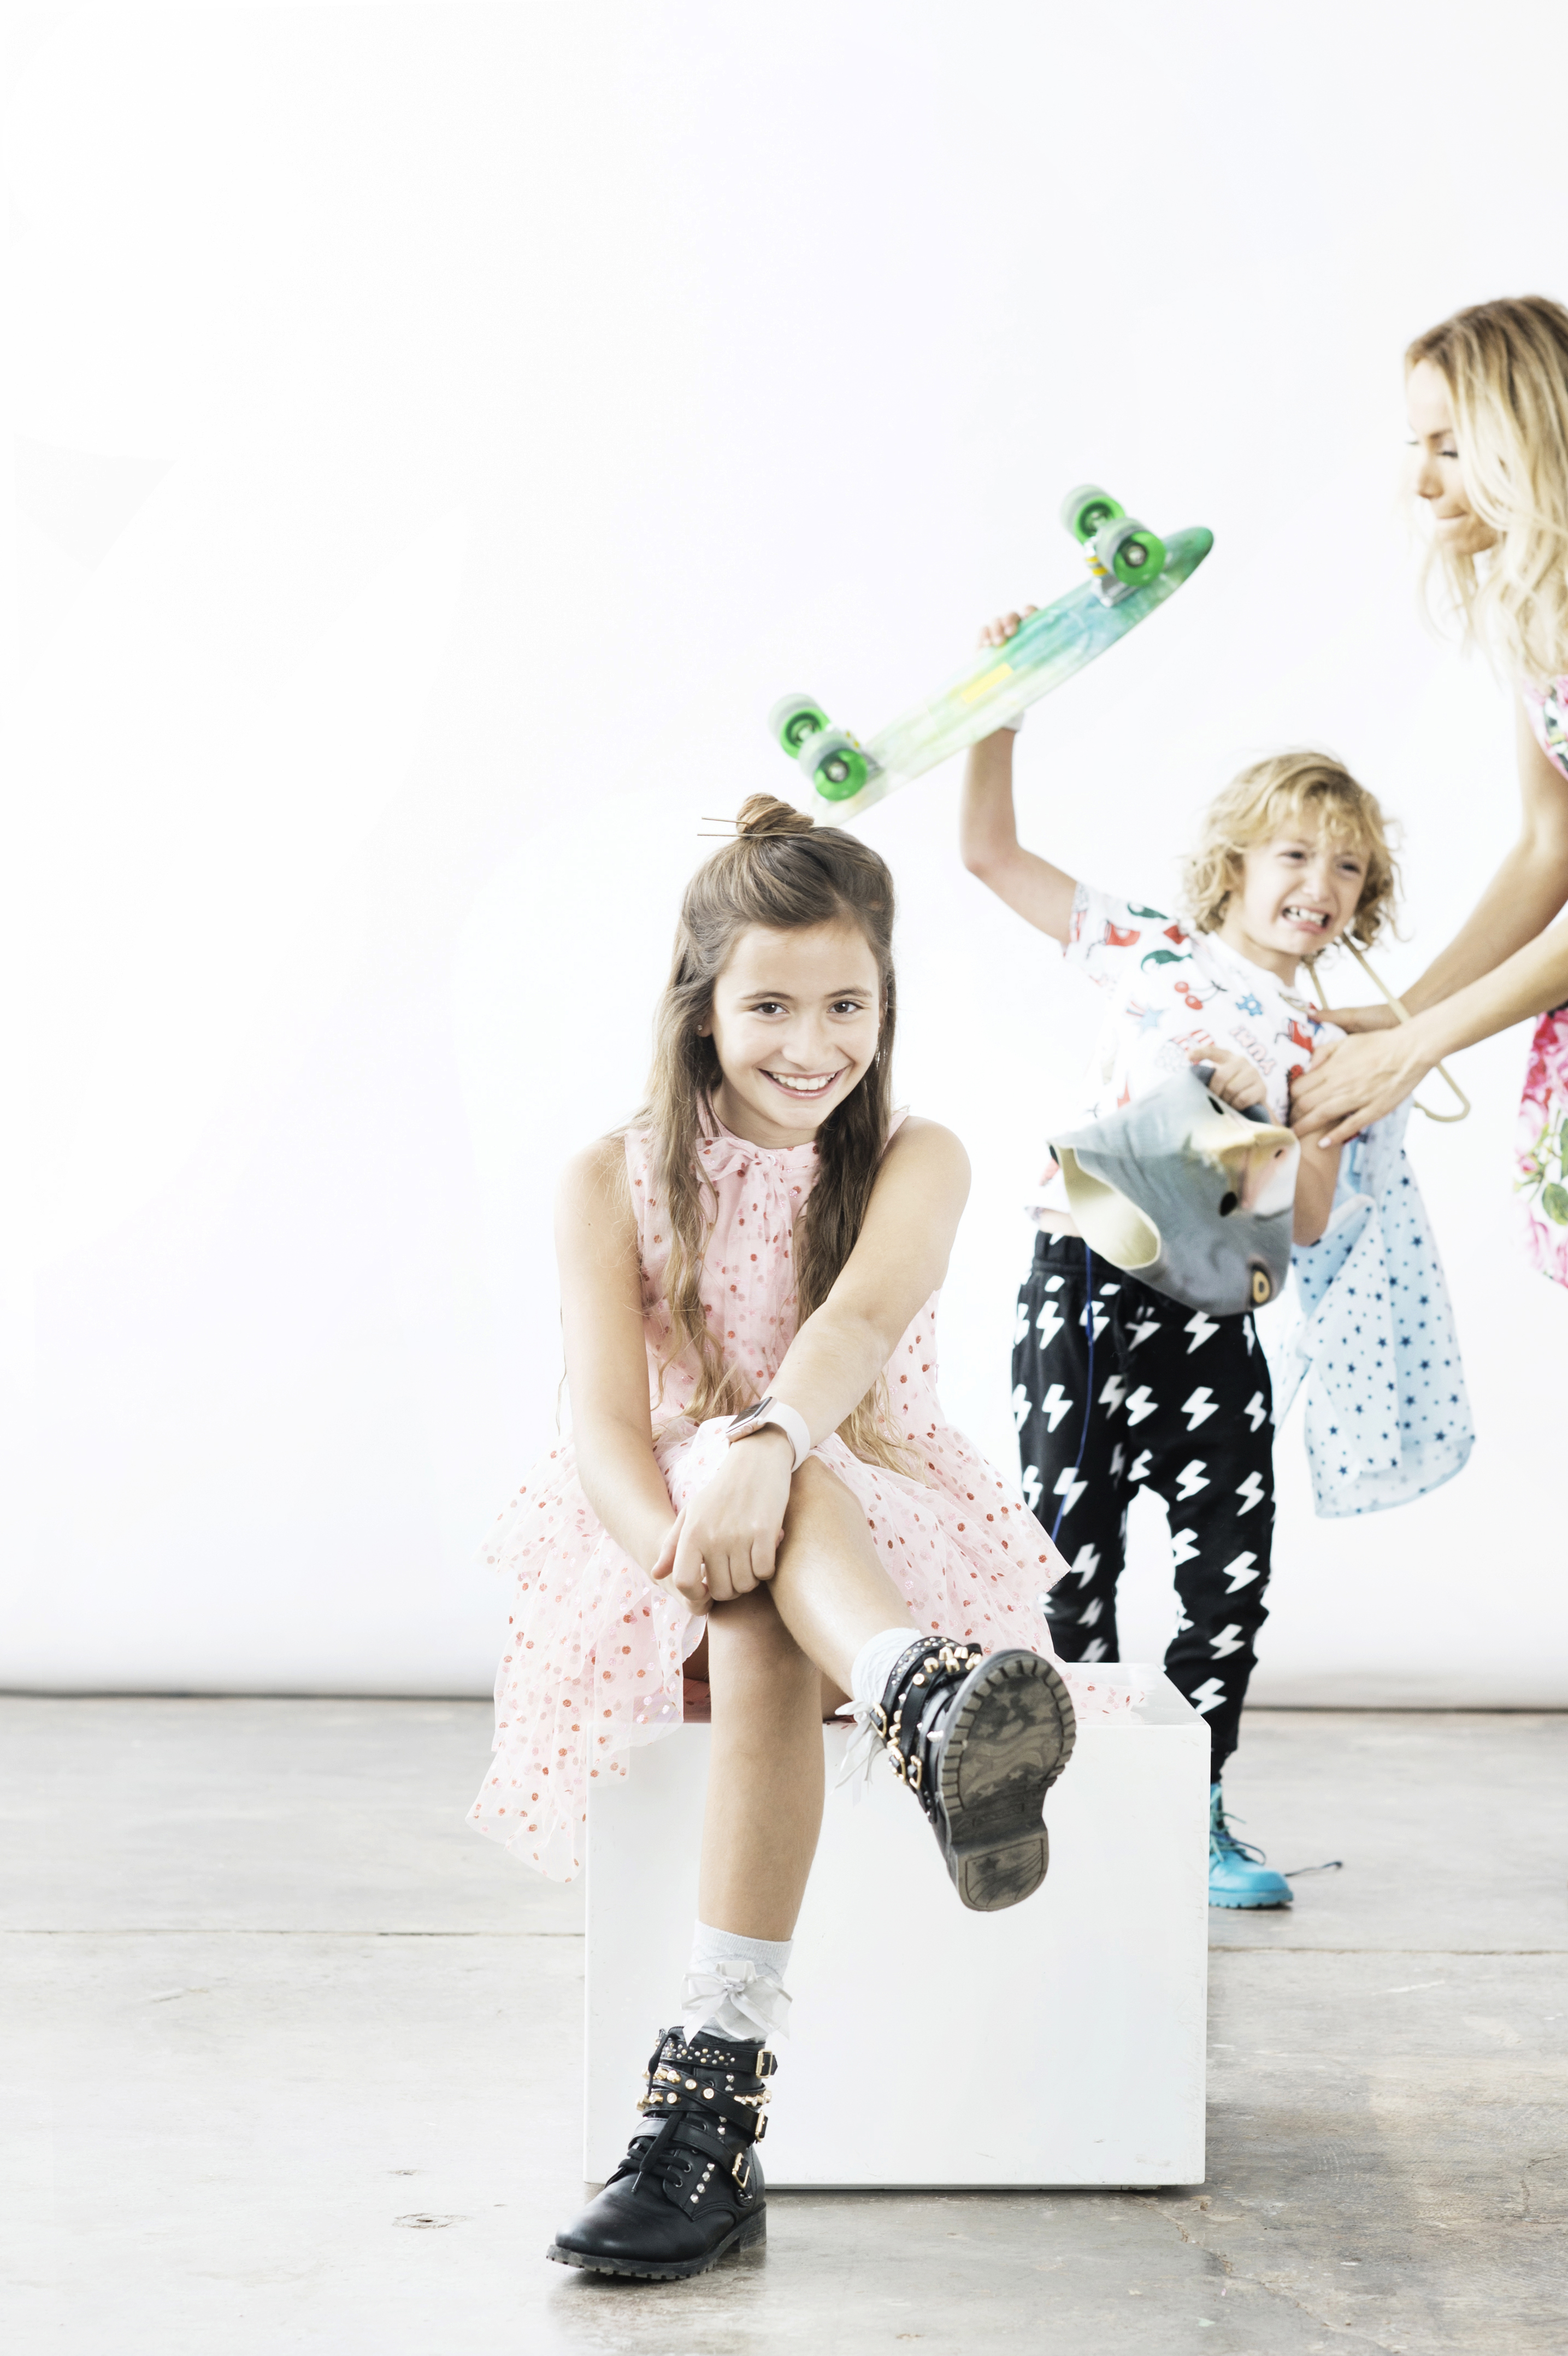 brother with skateboard and sister with mom in studio